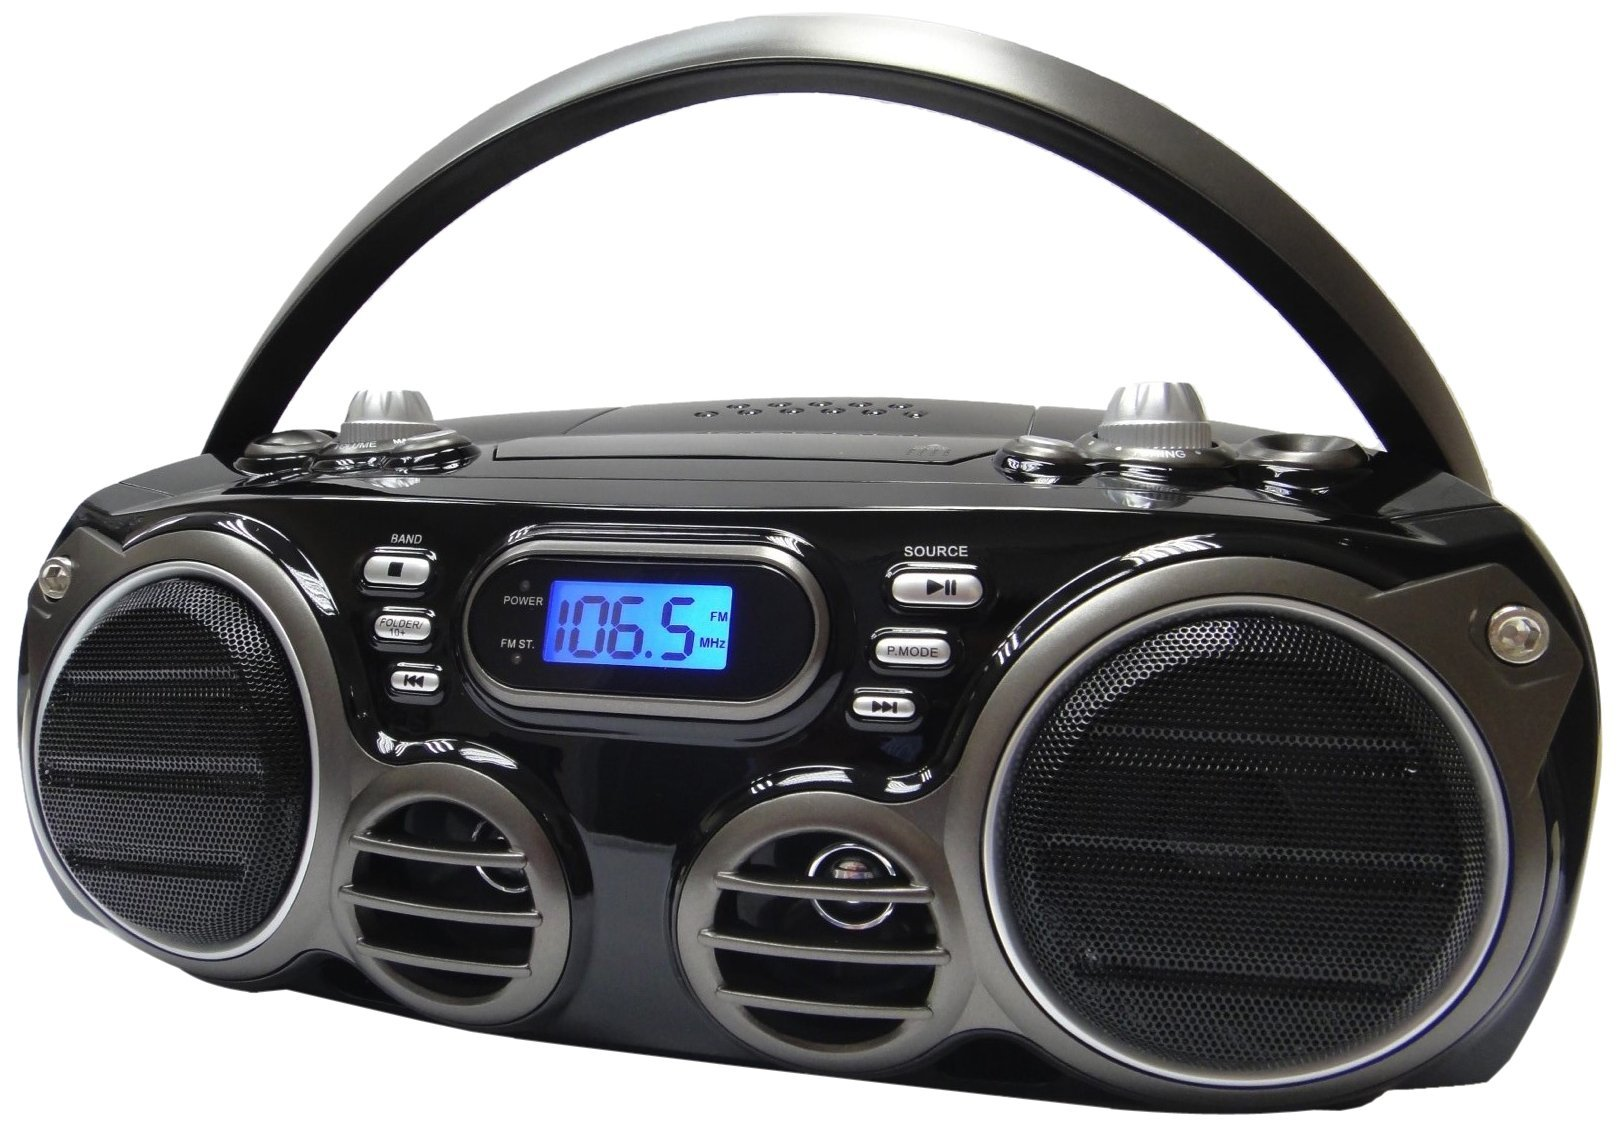 Sylvania SRCD682BT Bluetooth CD Portable Boombox w/ AM/FM Tuner Black (Certified Refurbished)